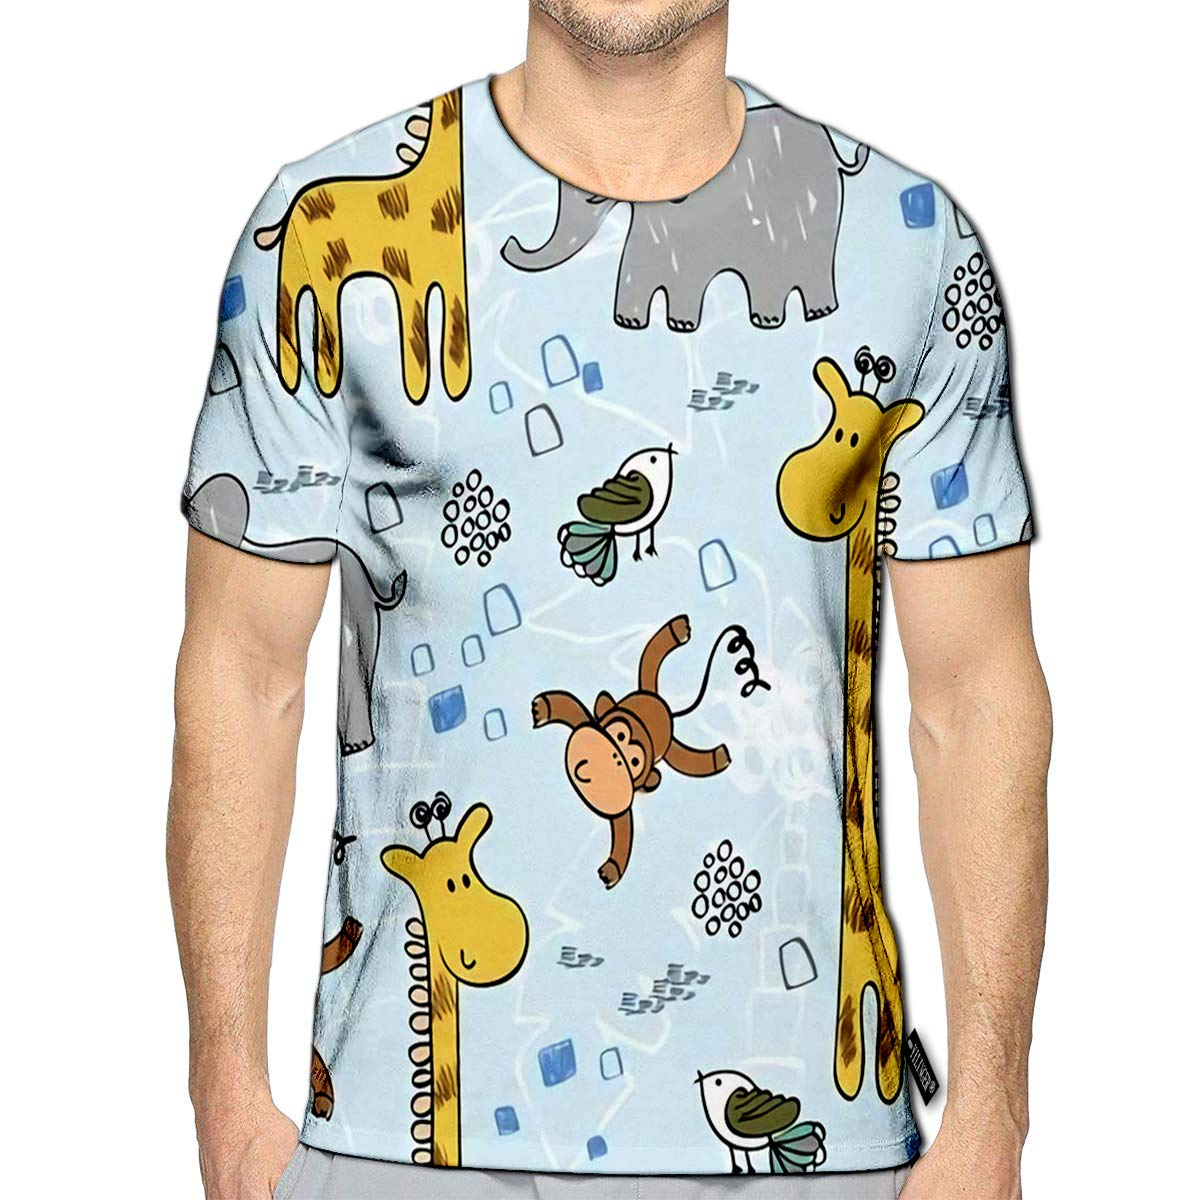 3D Printed T-Shirts Babies Hand Draw with Animals Short Sleeve Tops Tees